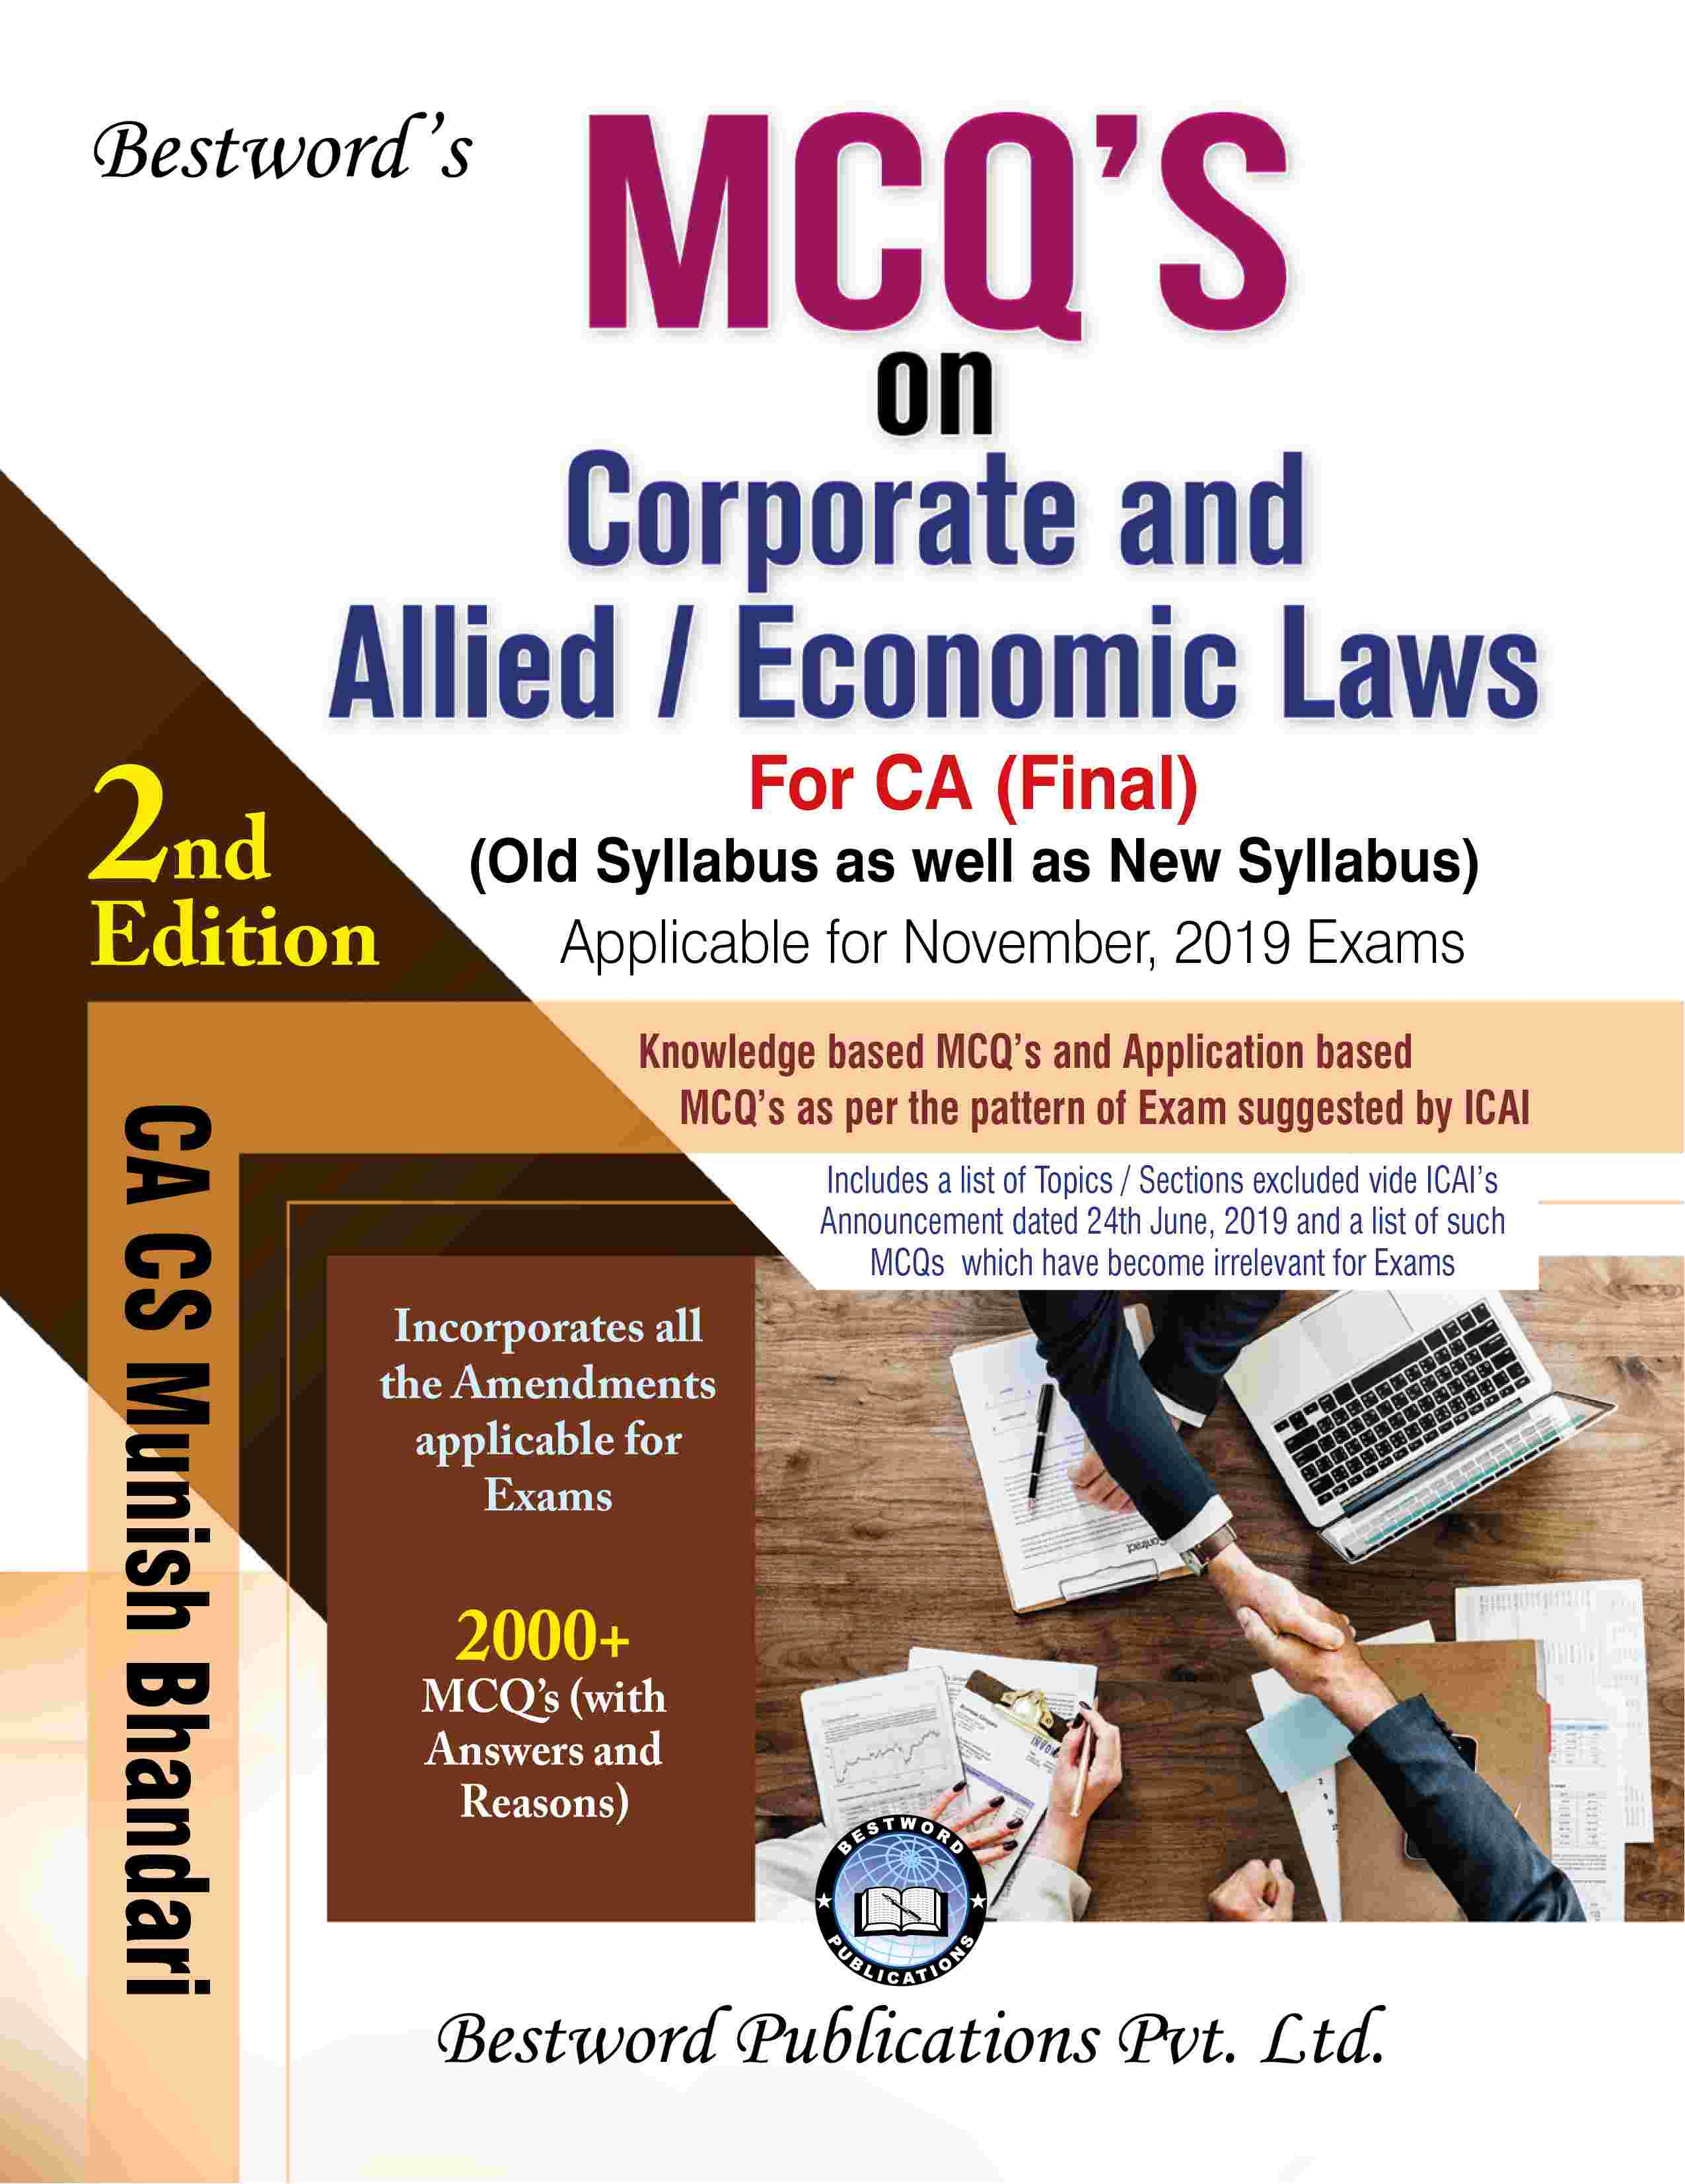 bestword's-mcqs-on-corporate-and-allied-laws-and-economic-laws---by-ca-cs-munish-bhandari---2nd-edition---for-ca-(final)-november,-2019-exams-(old-as-well-as-new-syllabus)